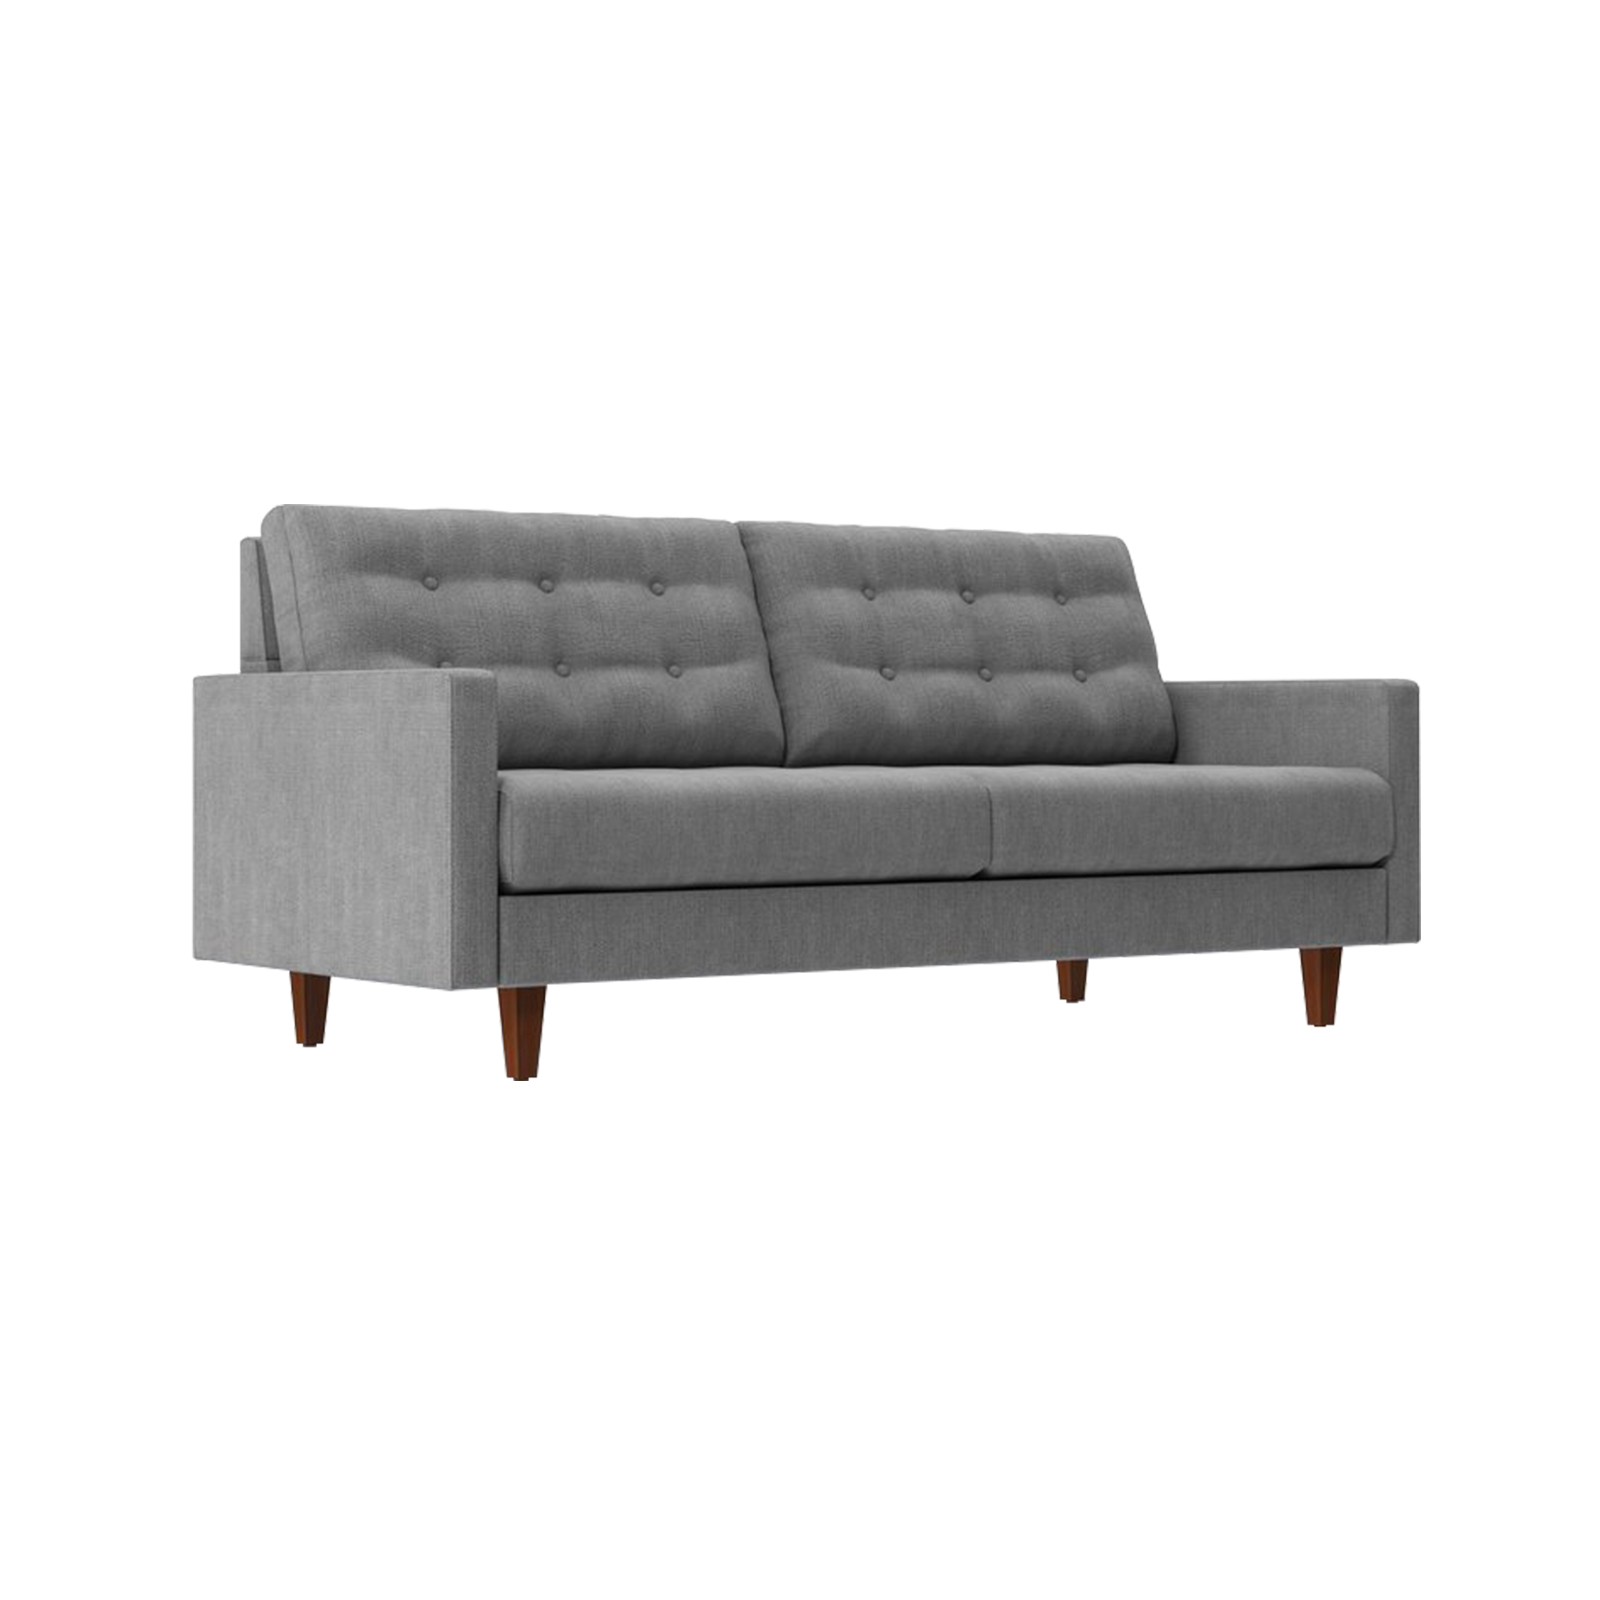 Admirable Canyon Sandy Tufted Sofa Rental Event Trade Show Furniture Pabps2019 Chair Design Images Pabps2019Com